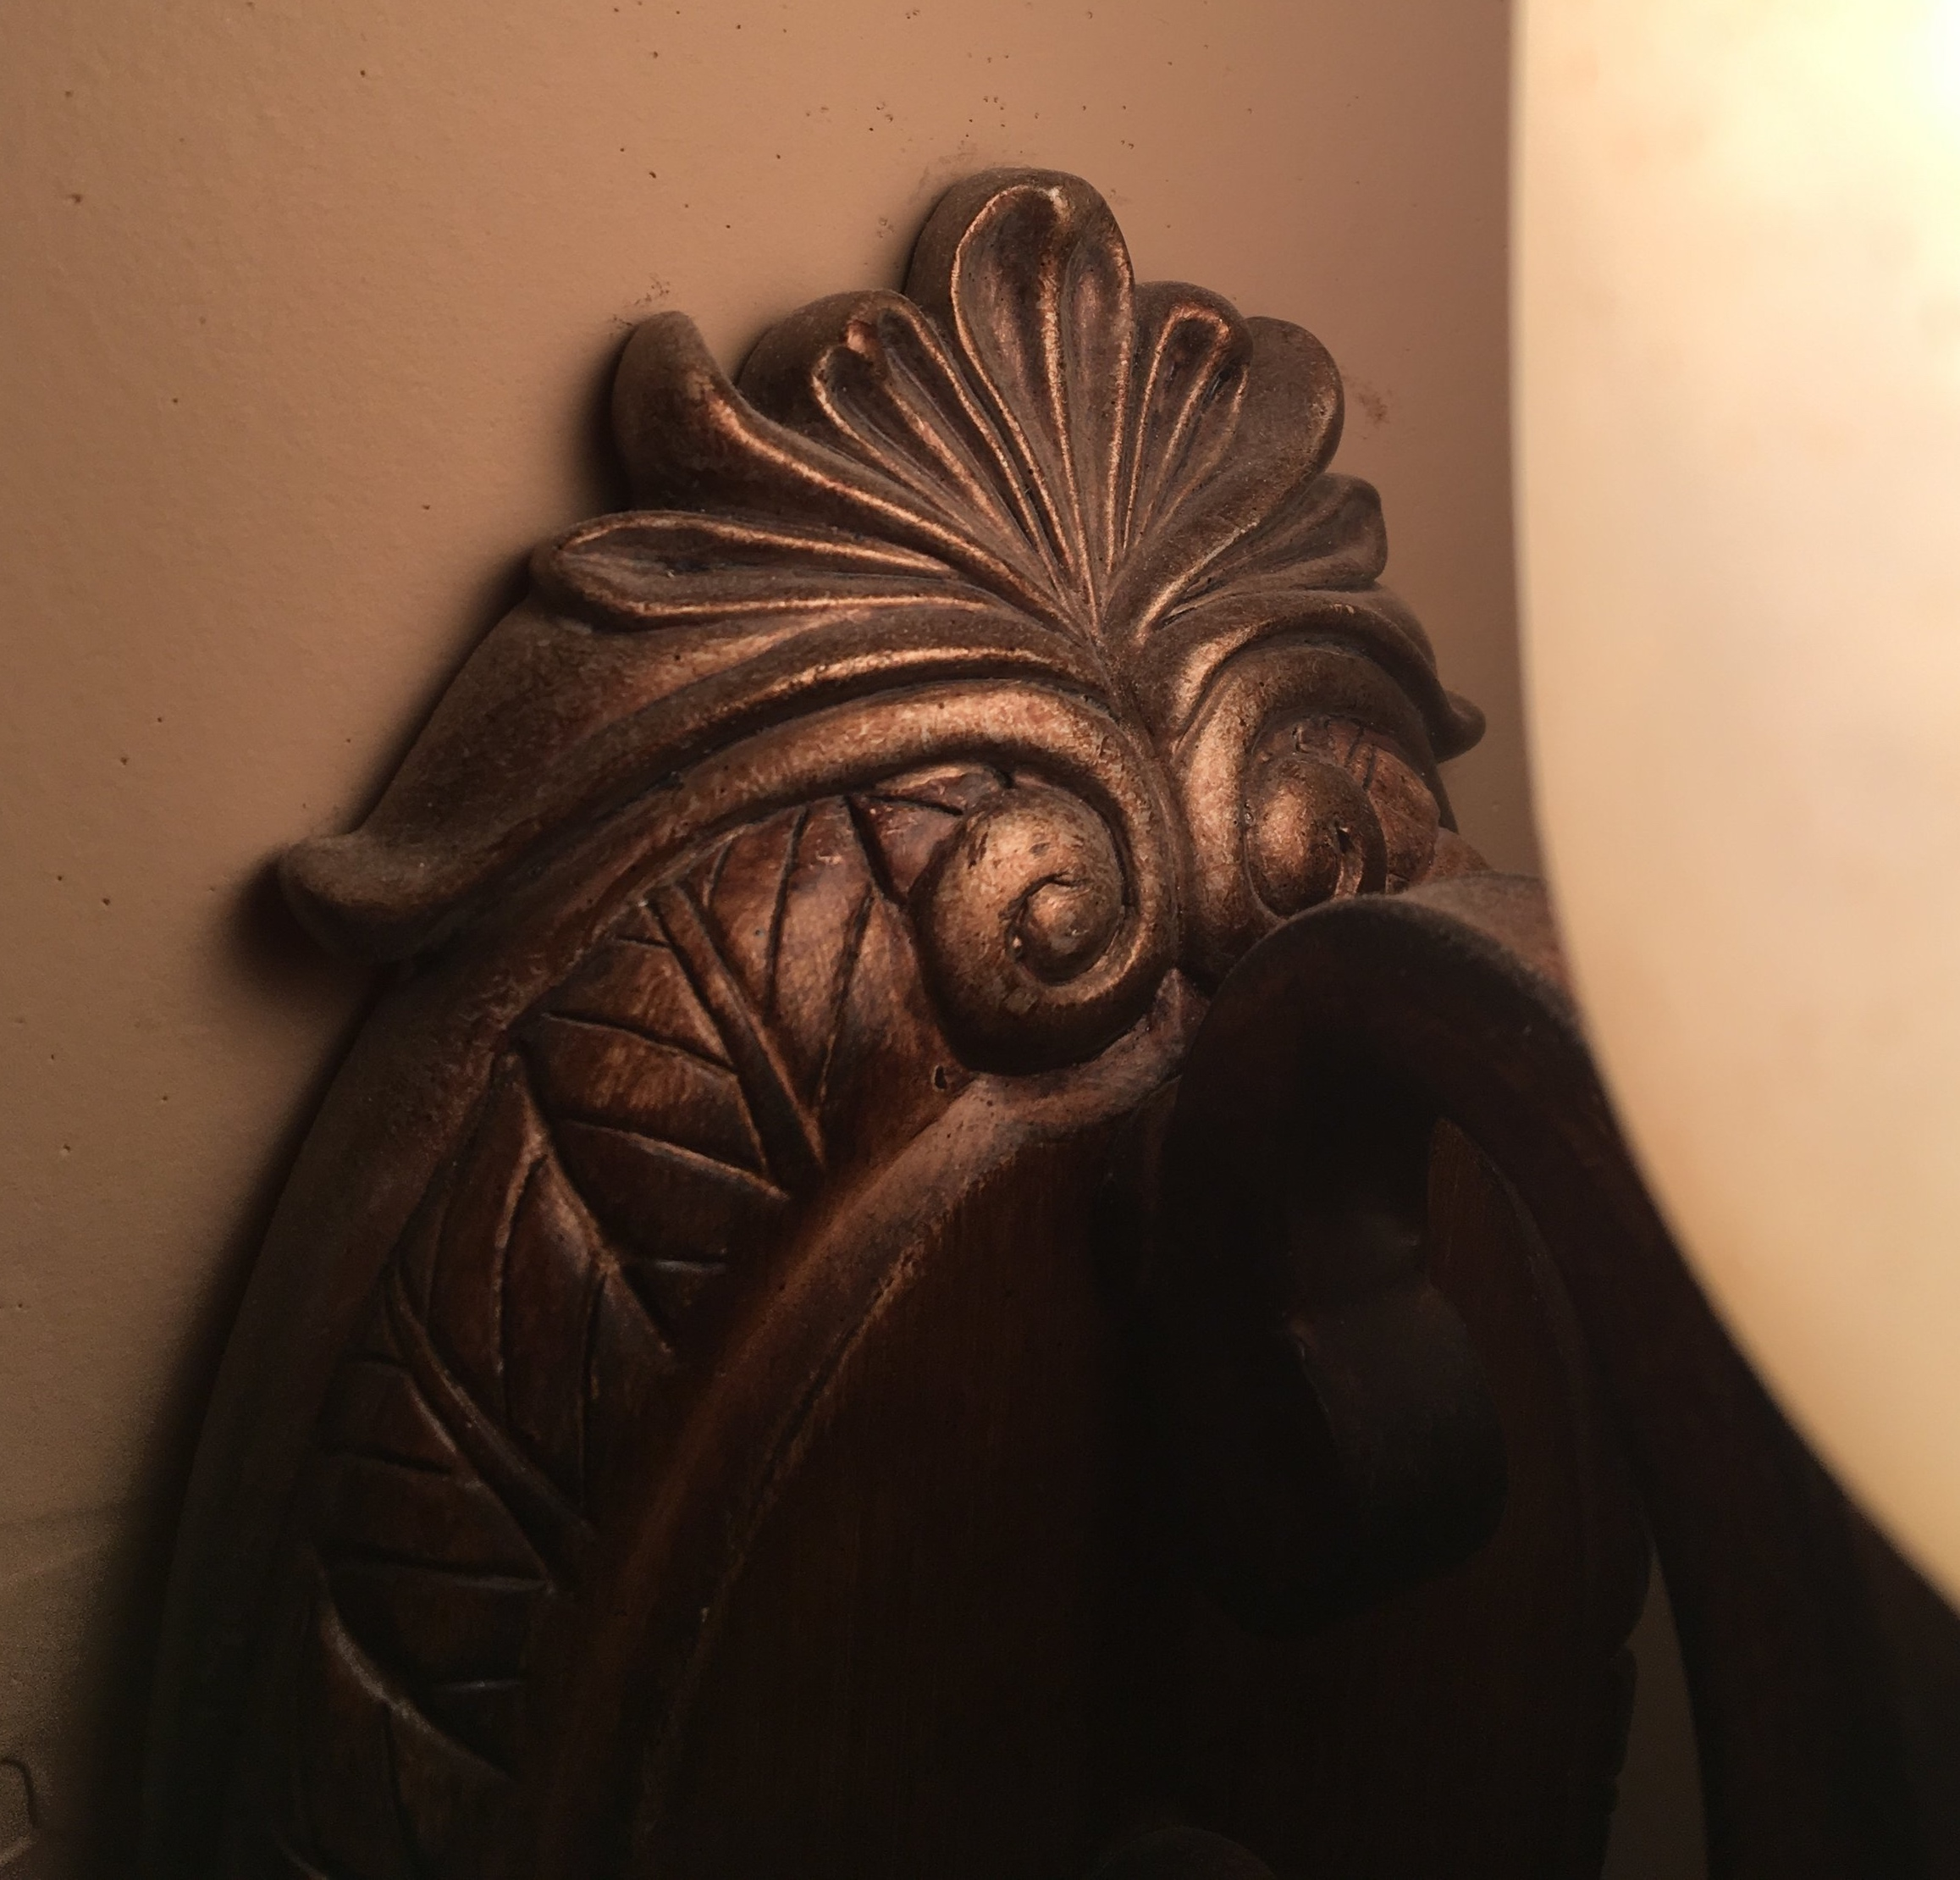 detail of a wall sconce in a friend's bathroom.